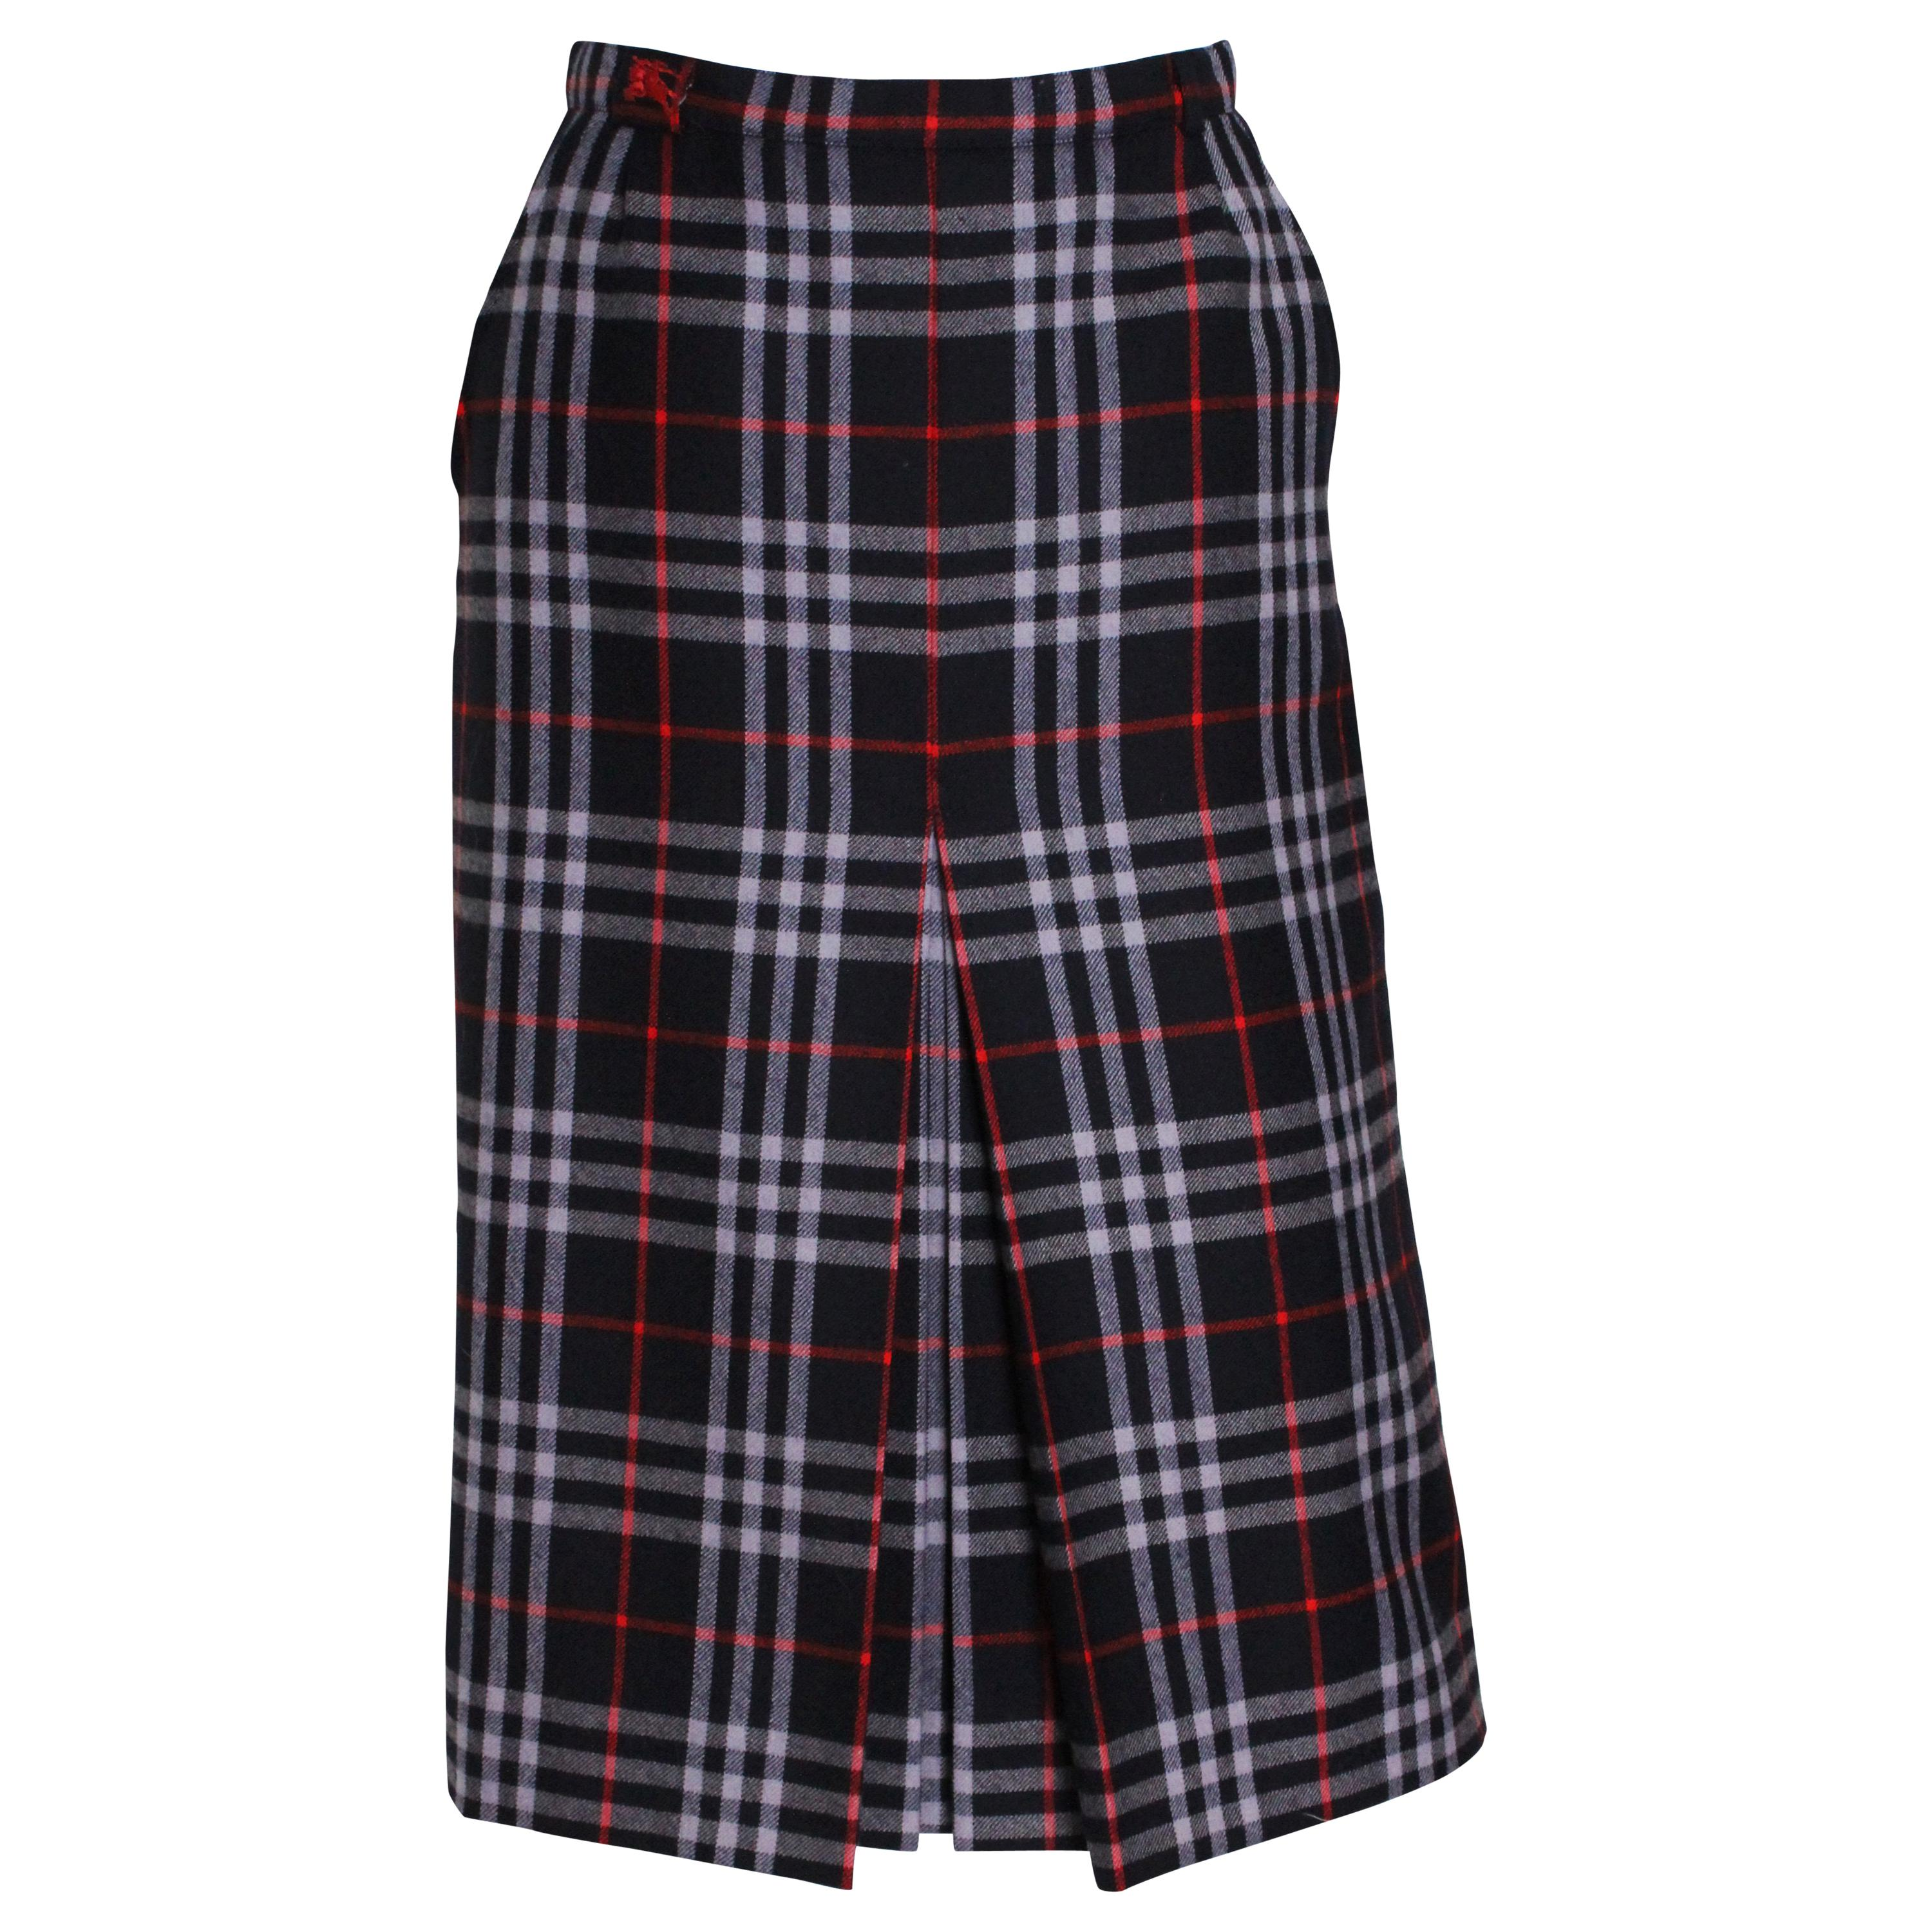 4a31afd141 Vintage Burberry Skirts - 11 For Sale at 1stdibs